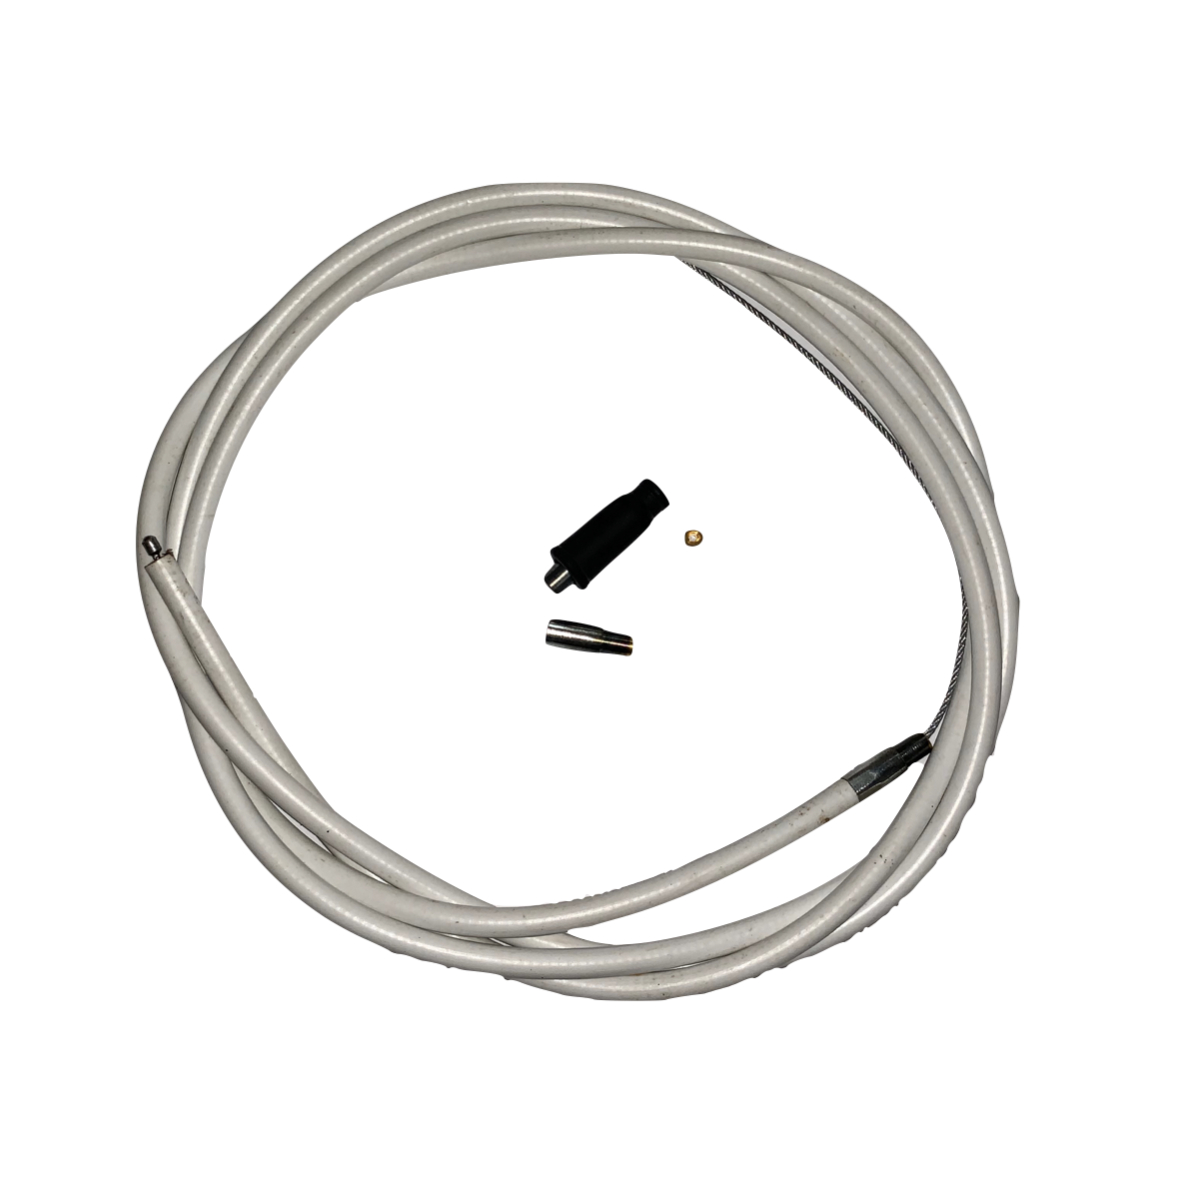 VENHILL UNIVERSAL THROTTLE CABLE KIT 1.4M - STANDARD - WHITE